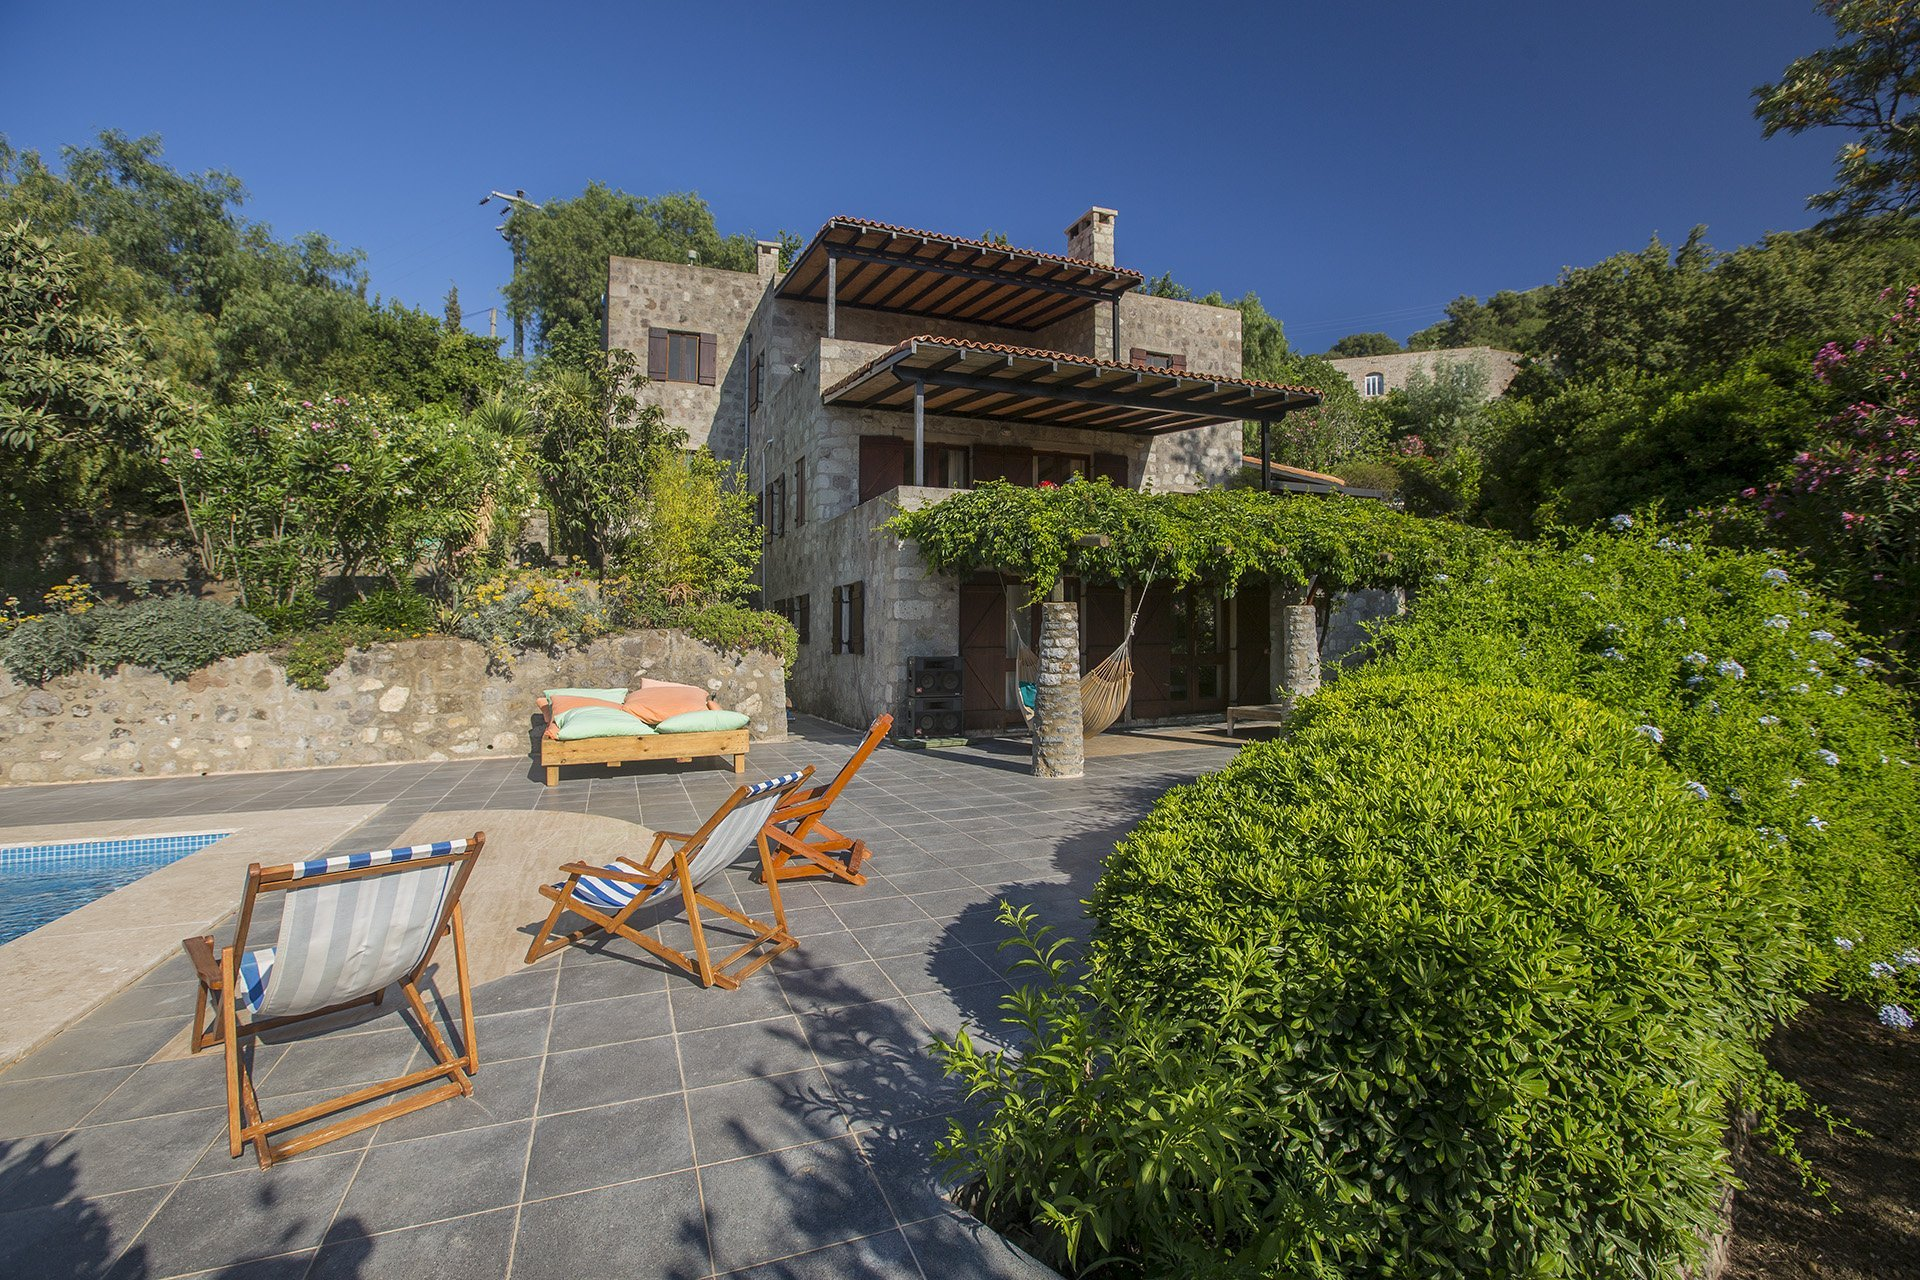 2019-21-Yalikavak-Bodrum-Luxury-Villa-for-sale